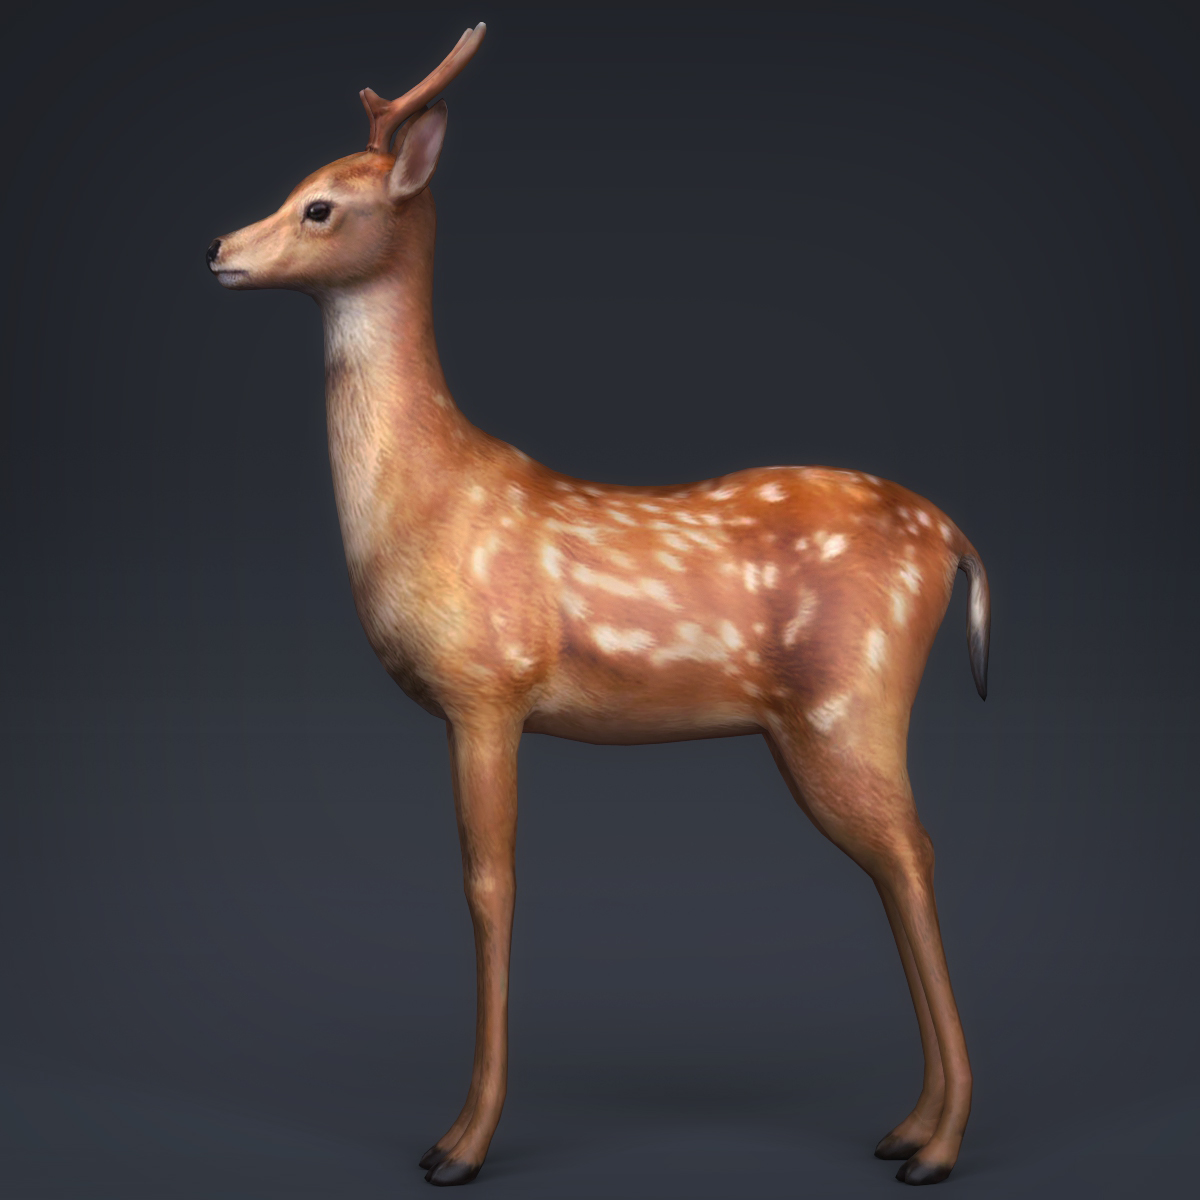 low poly realistic deer 3d model max fbx c4d ma mb obj 223712